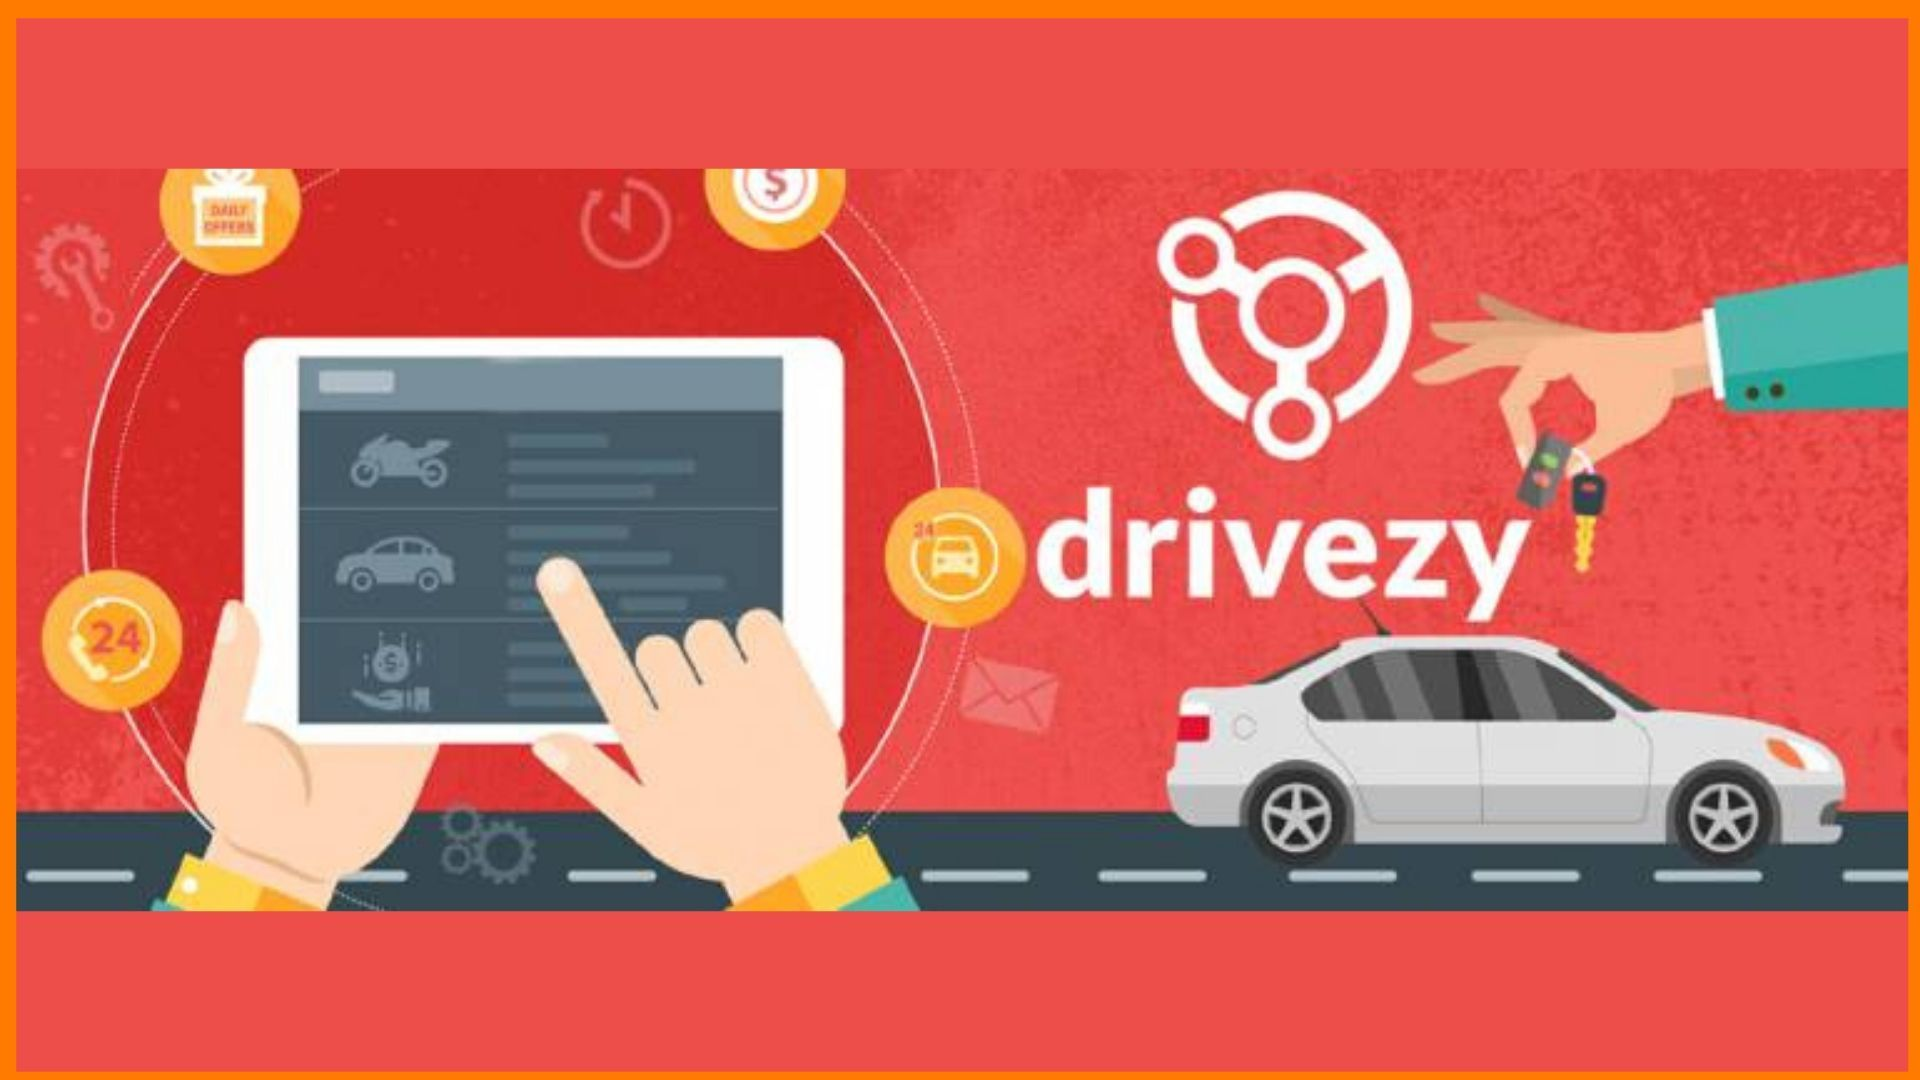 Drivezy - Self-driven Cars at the Most Affordable Prices!